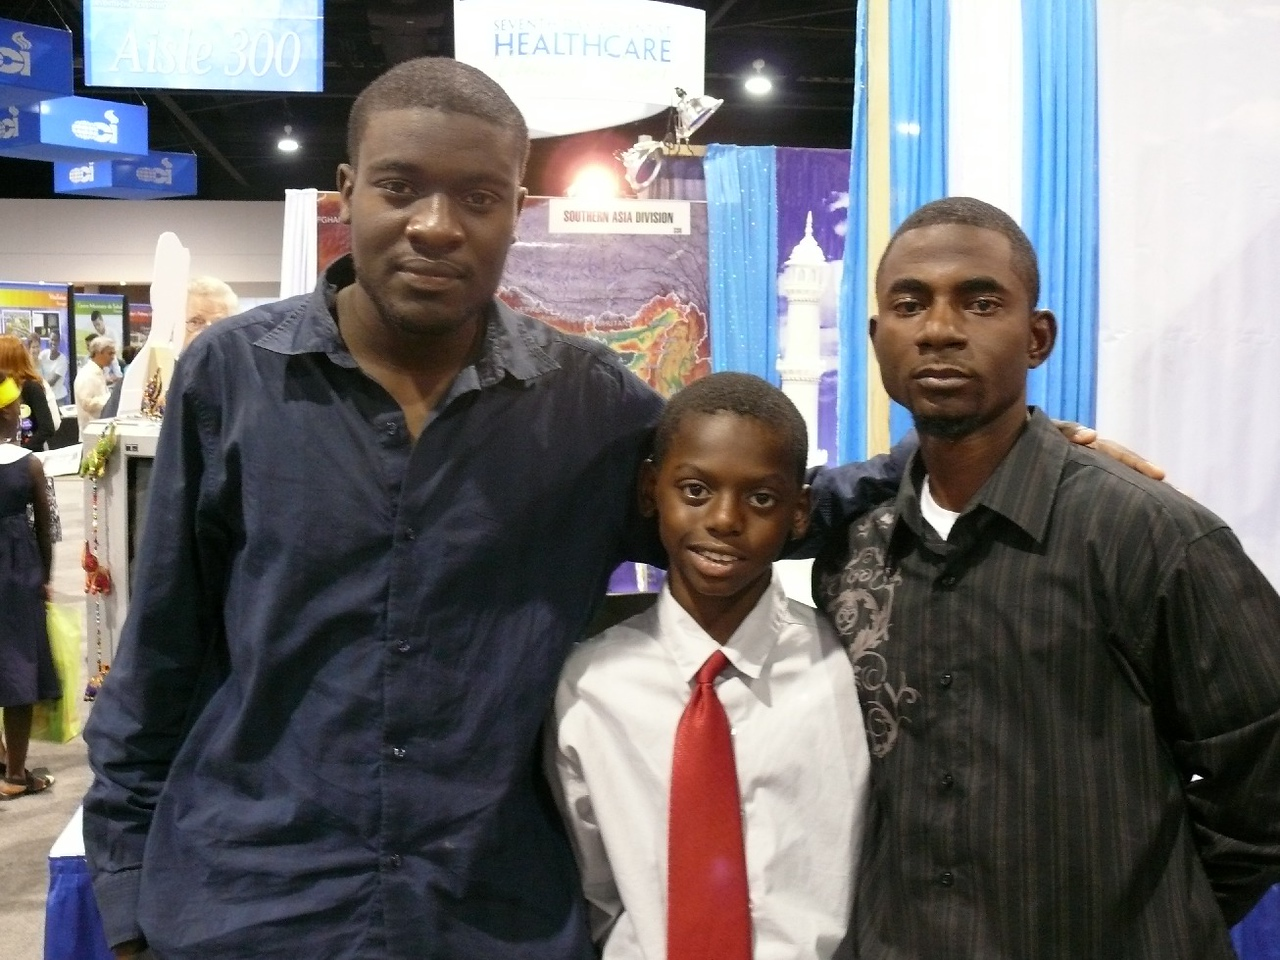 The young man on the right was visiting at the General Conference from Haiti.  He had been there during the huge earthquake some months before.